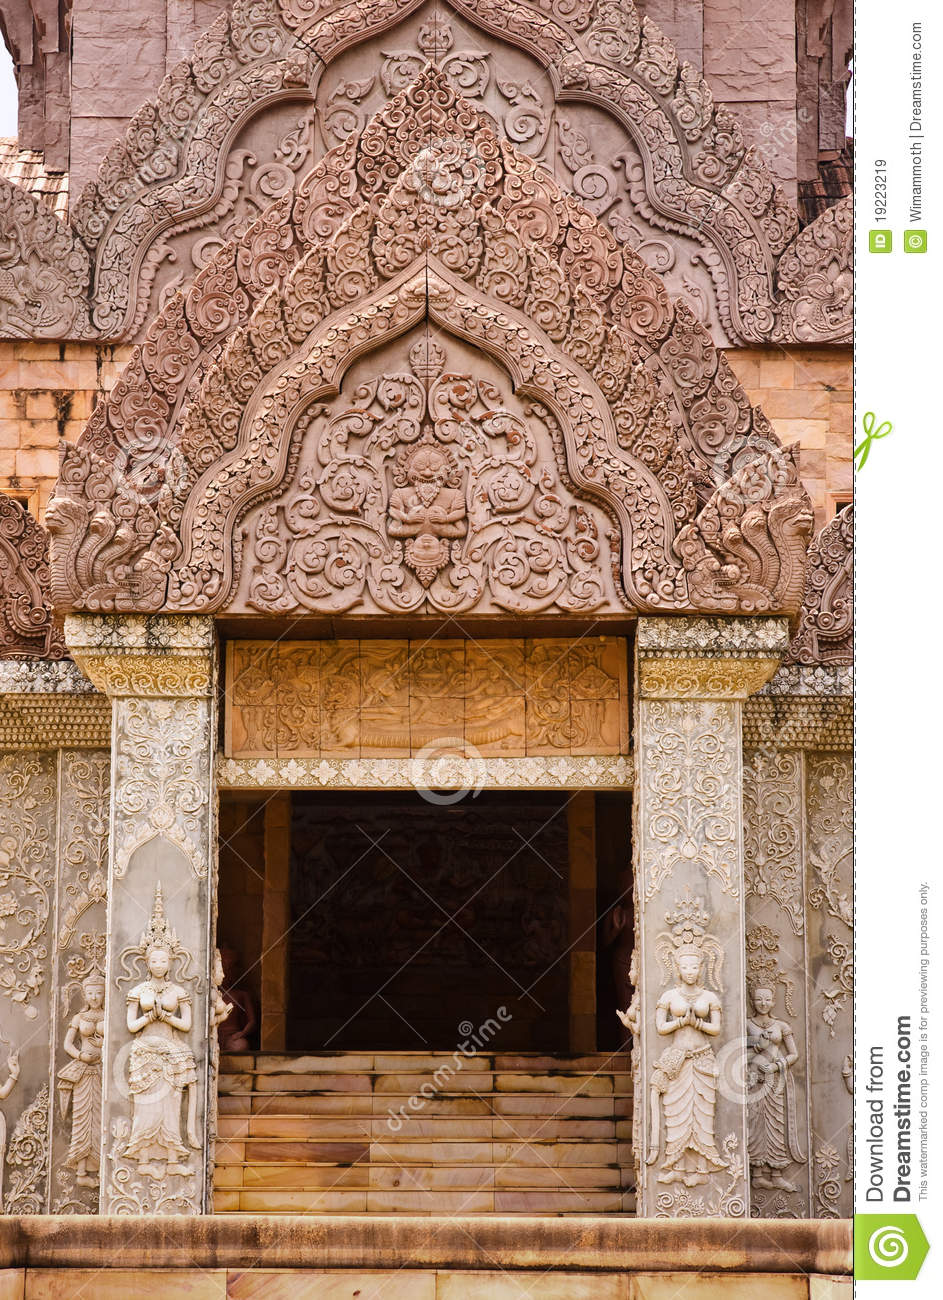 Stone carvings royalty free stock images image